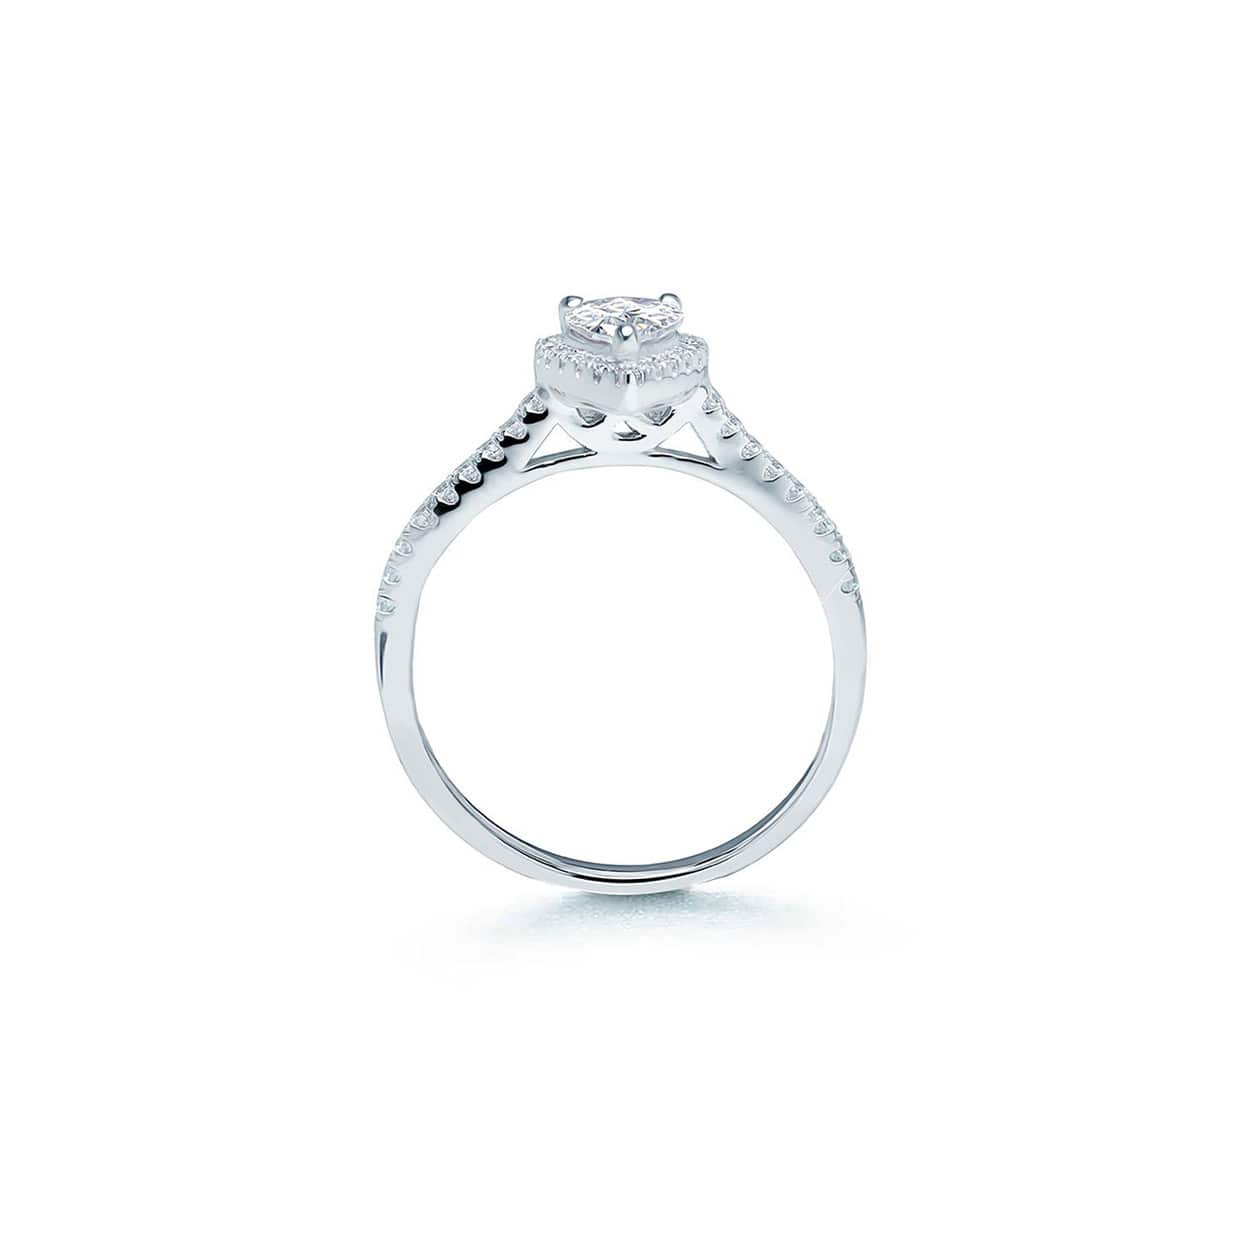 Oxford Silver Halo Pear Ring - Abelstedt